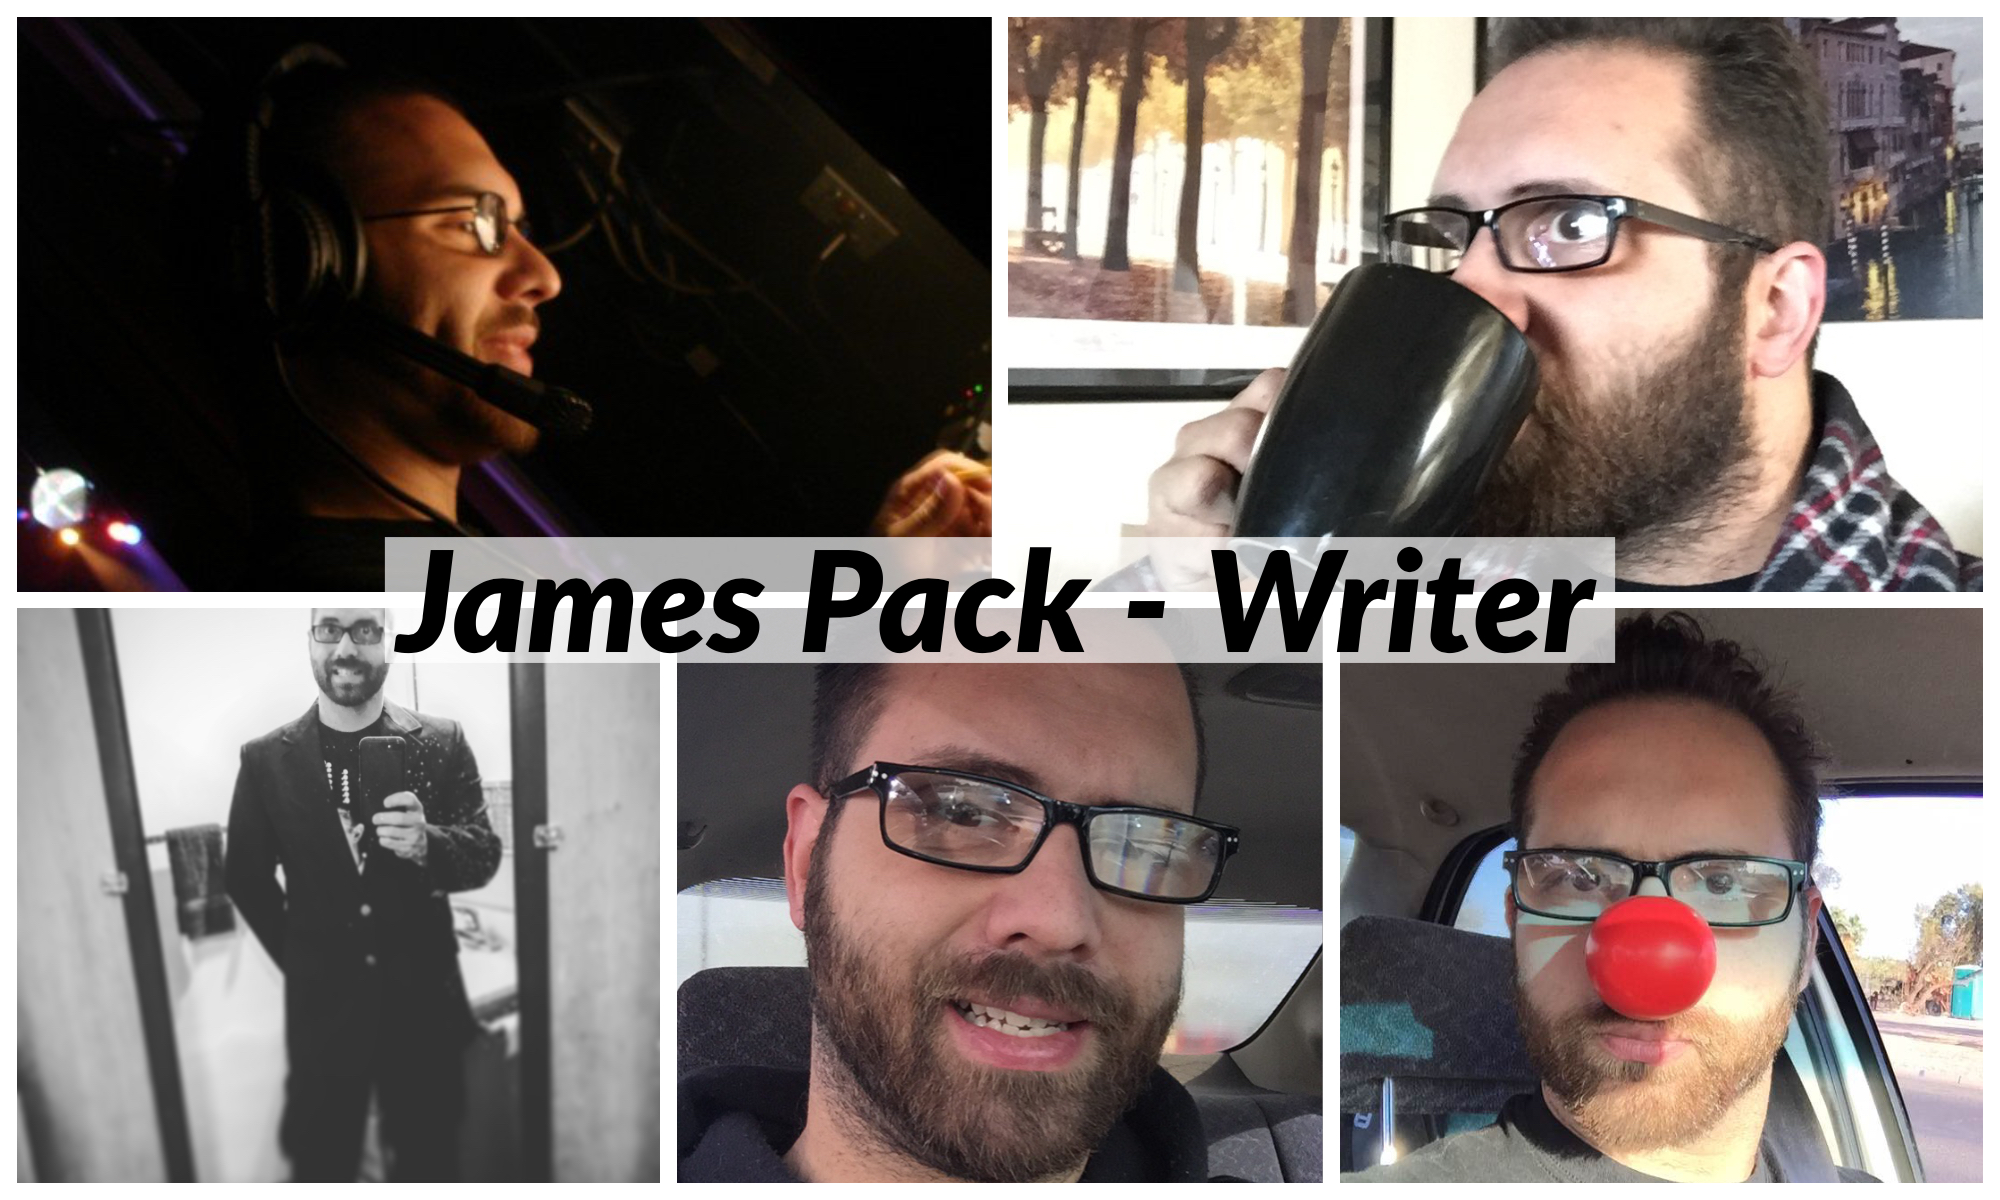 James Pack